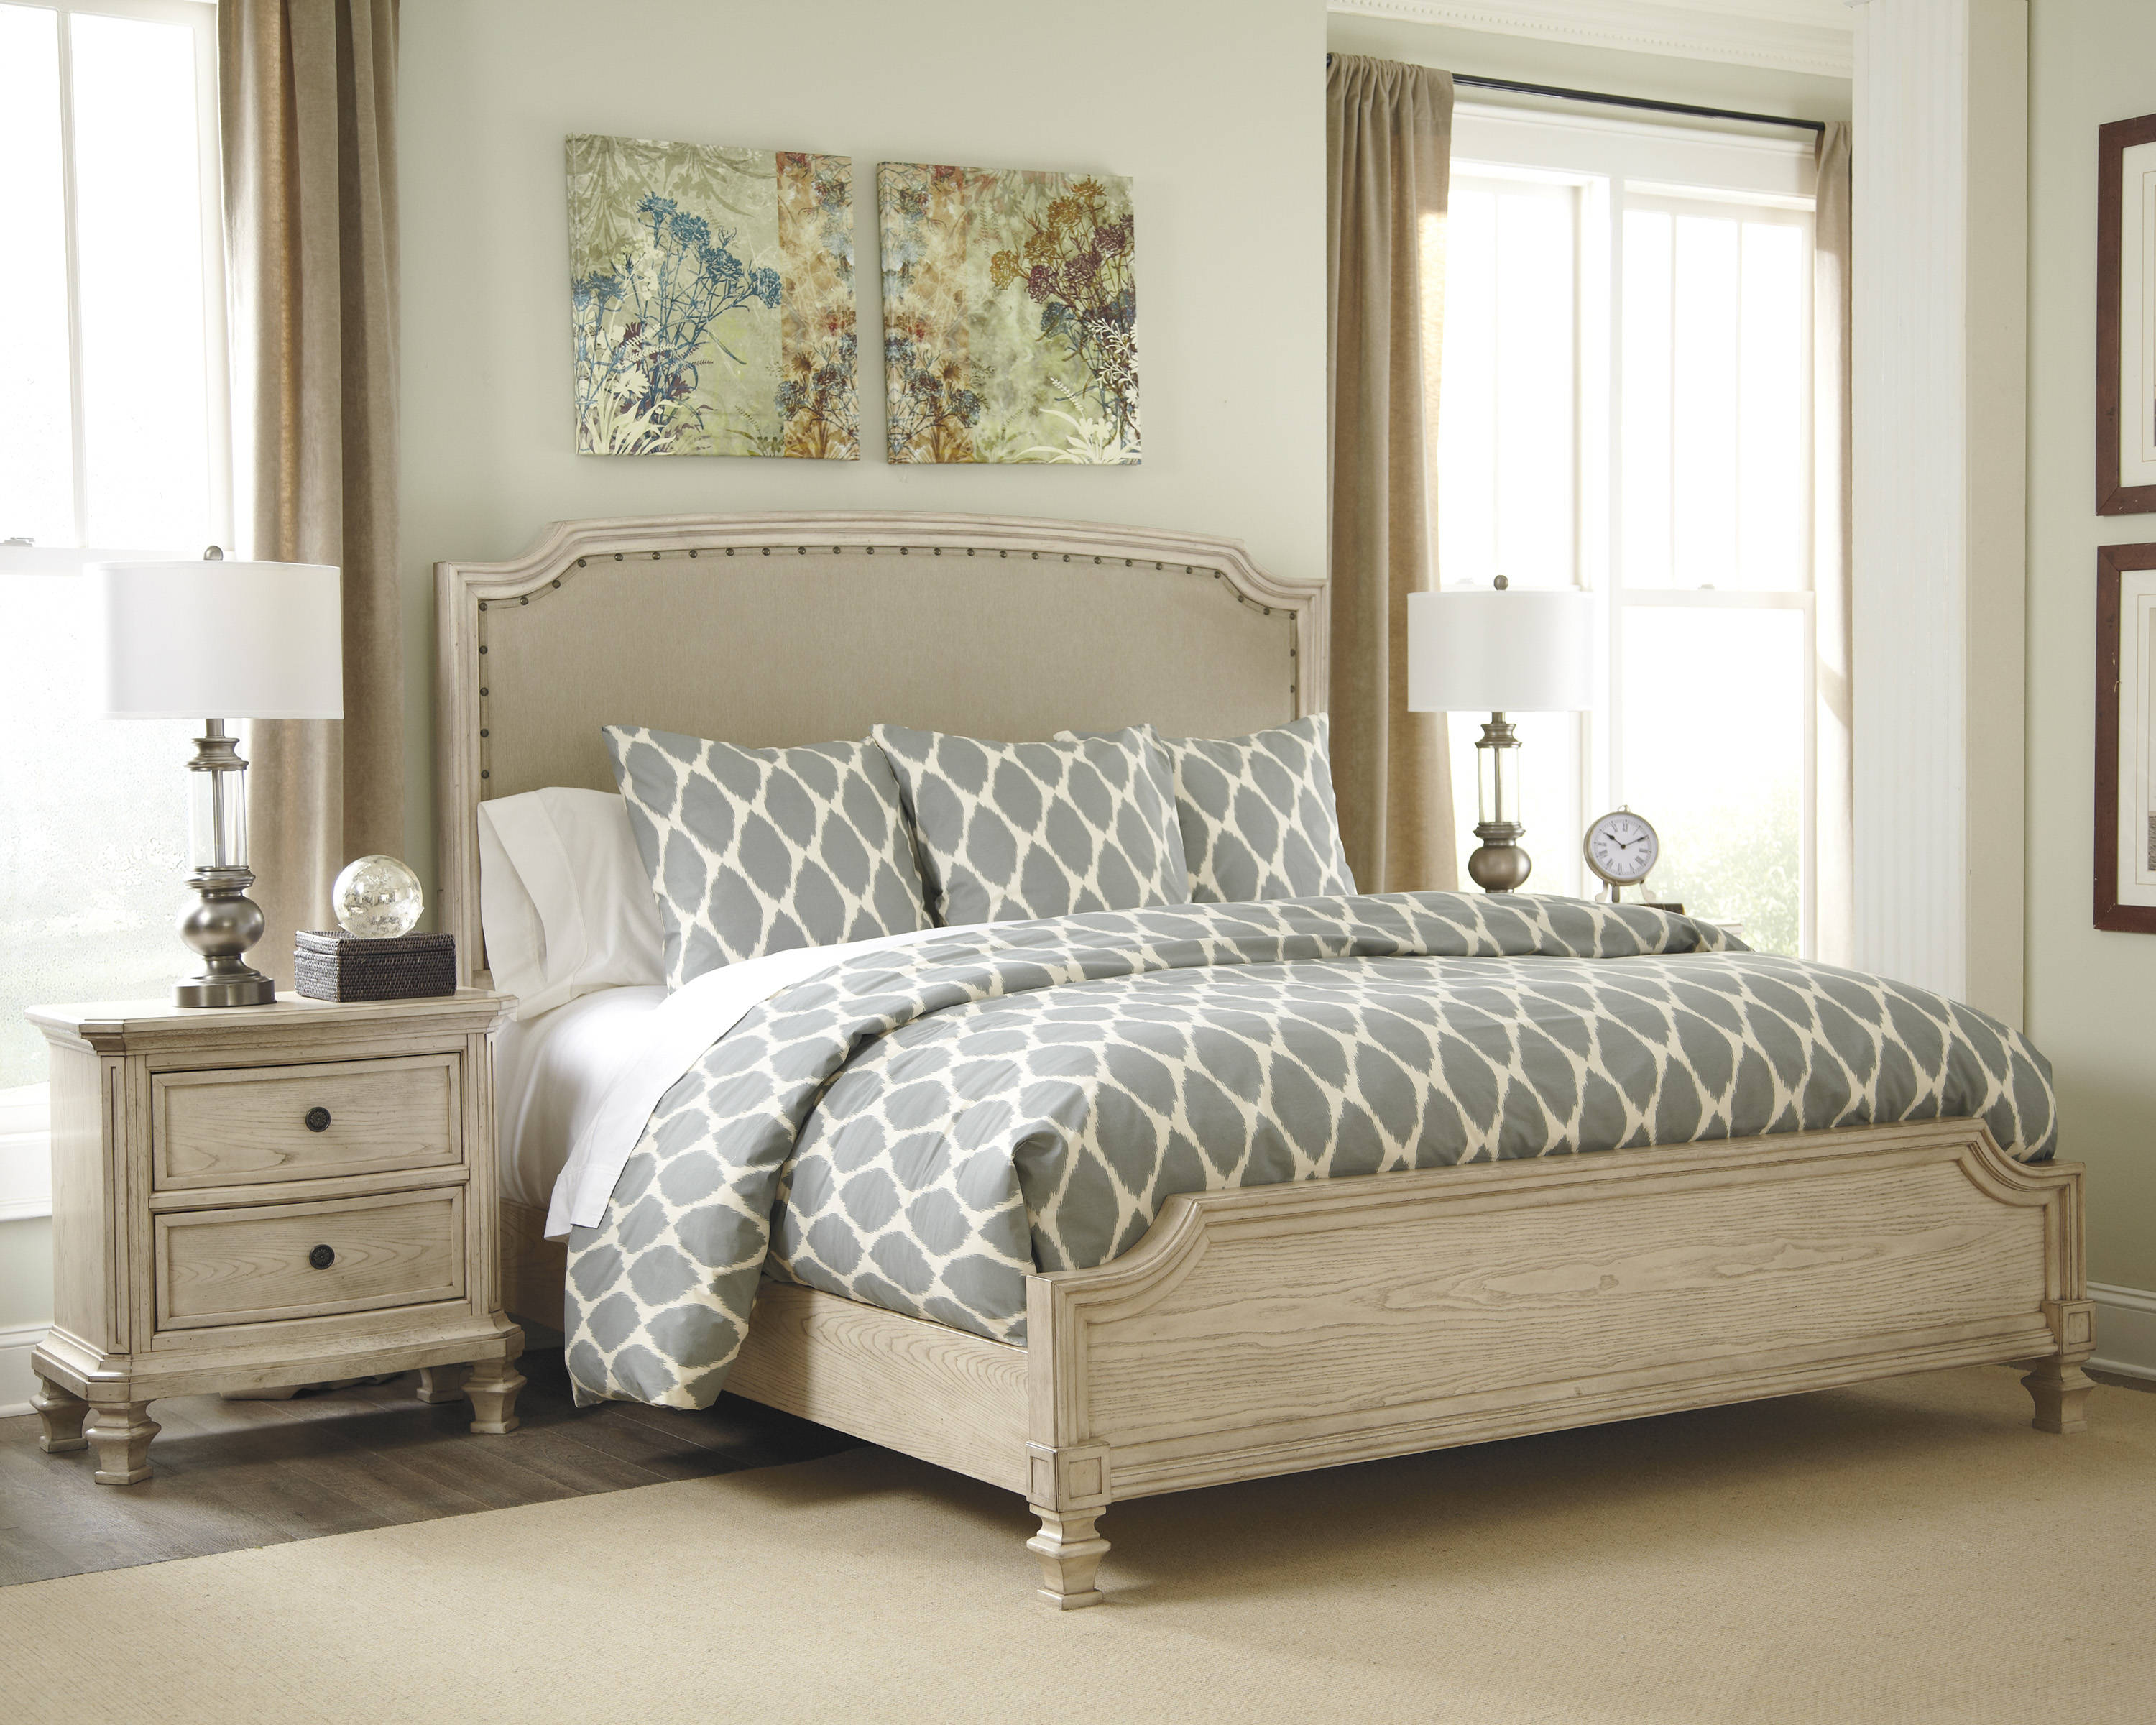 Ashley Furniture Demarlos 2pc Bedroom Set with King Upholstered Bed